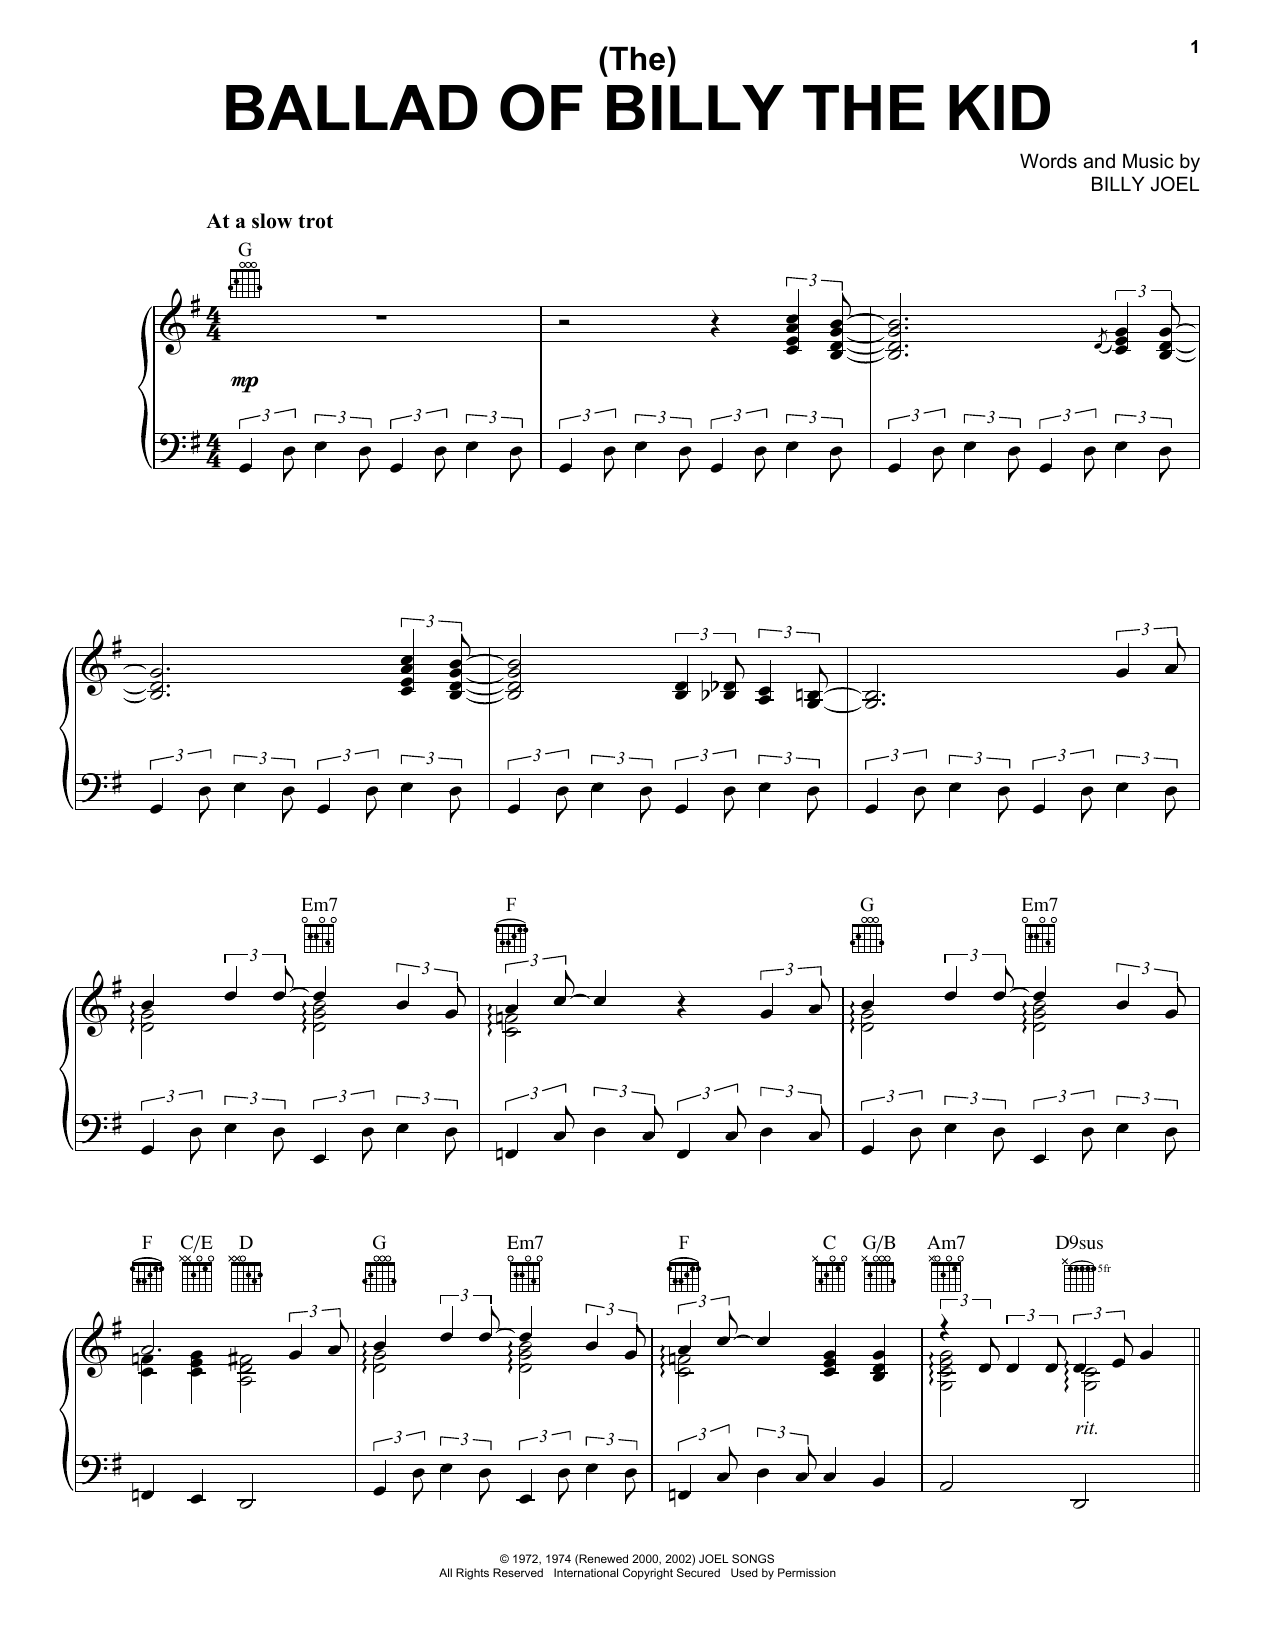 (The) Ballad Of Billy The Kid Sheet Music